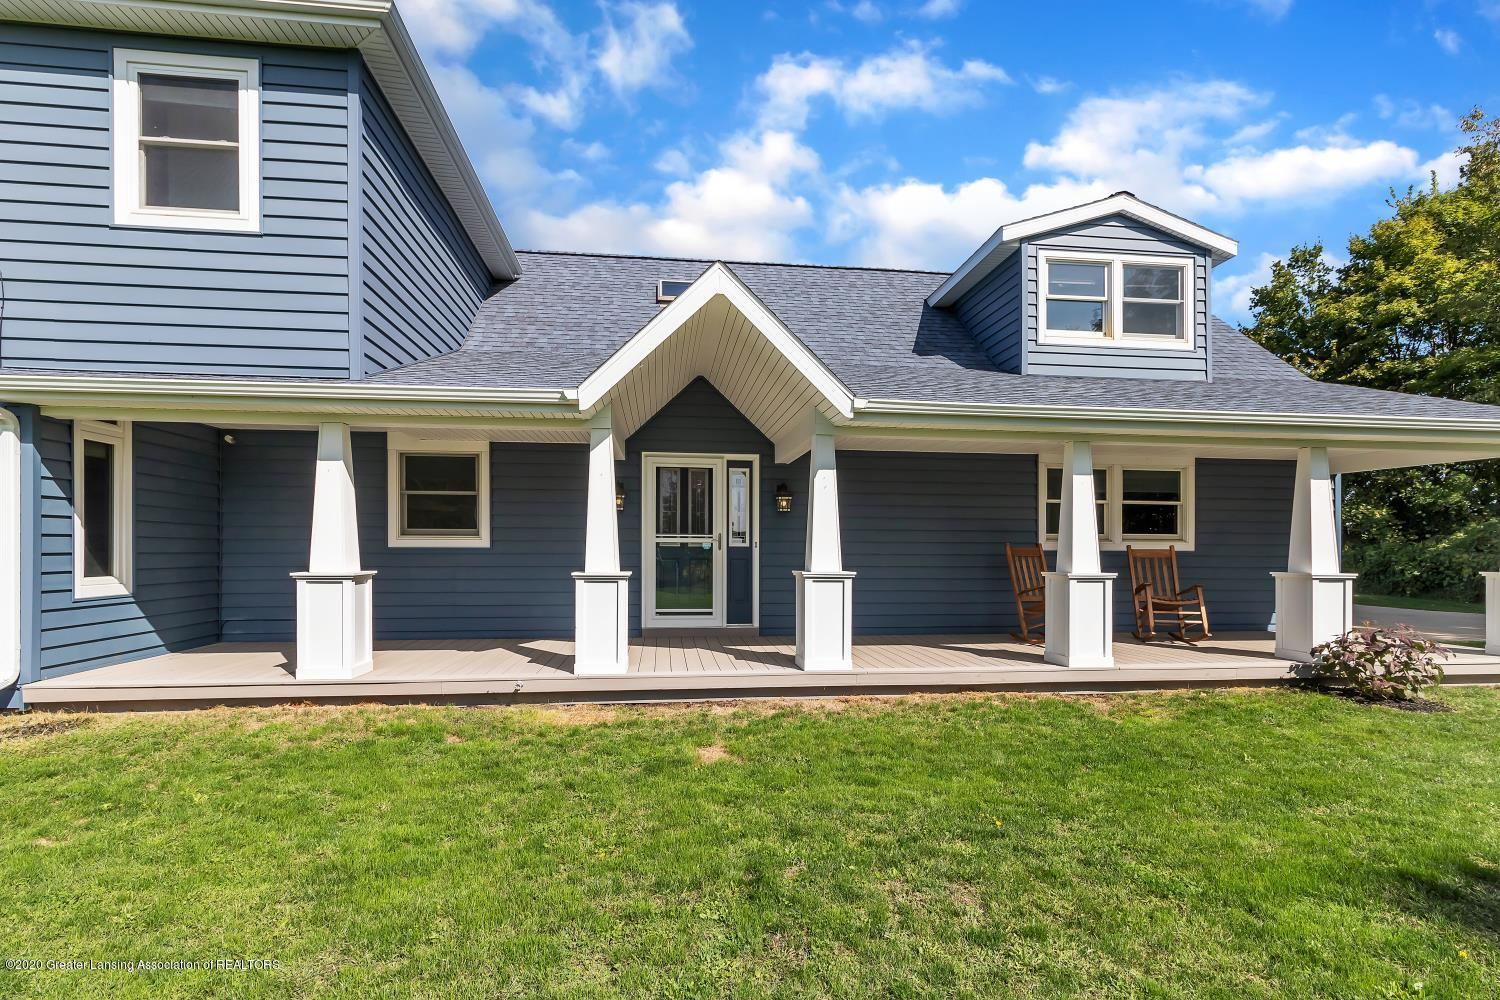 7346 W Cutler Rd - 46'X8' COVERED PORCH - 5